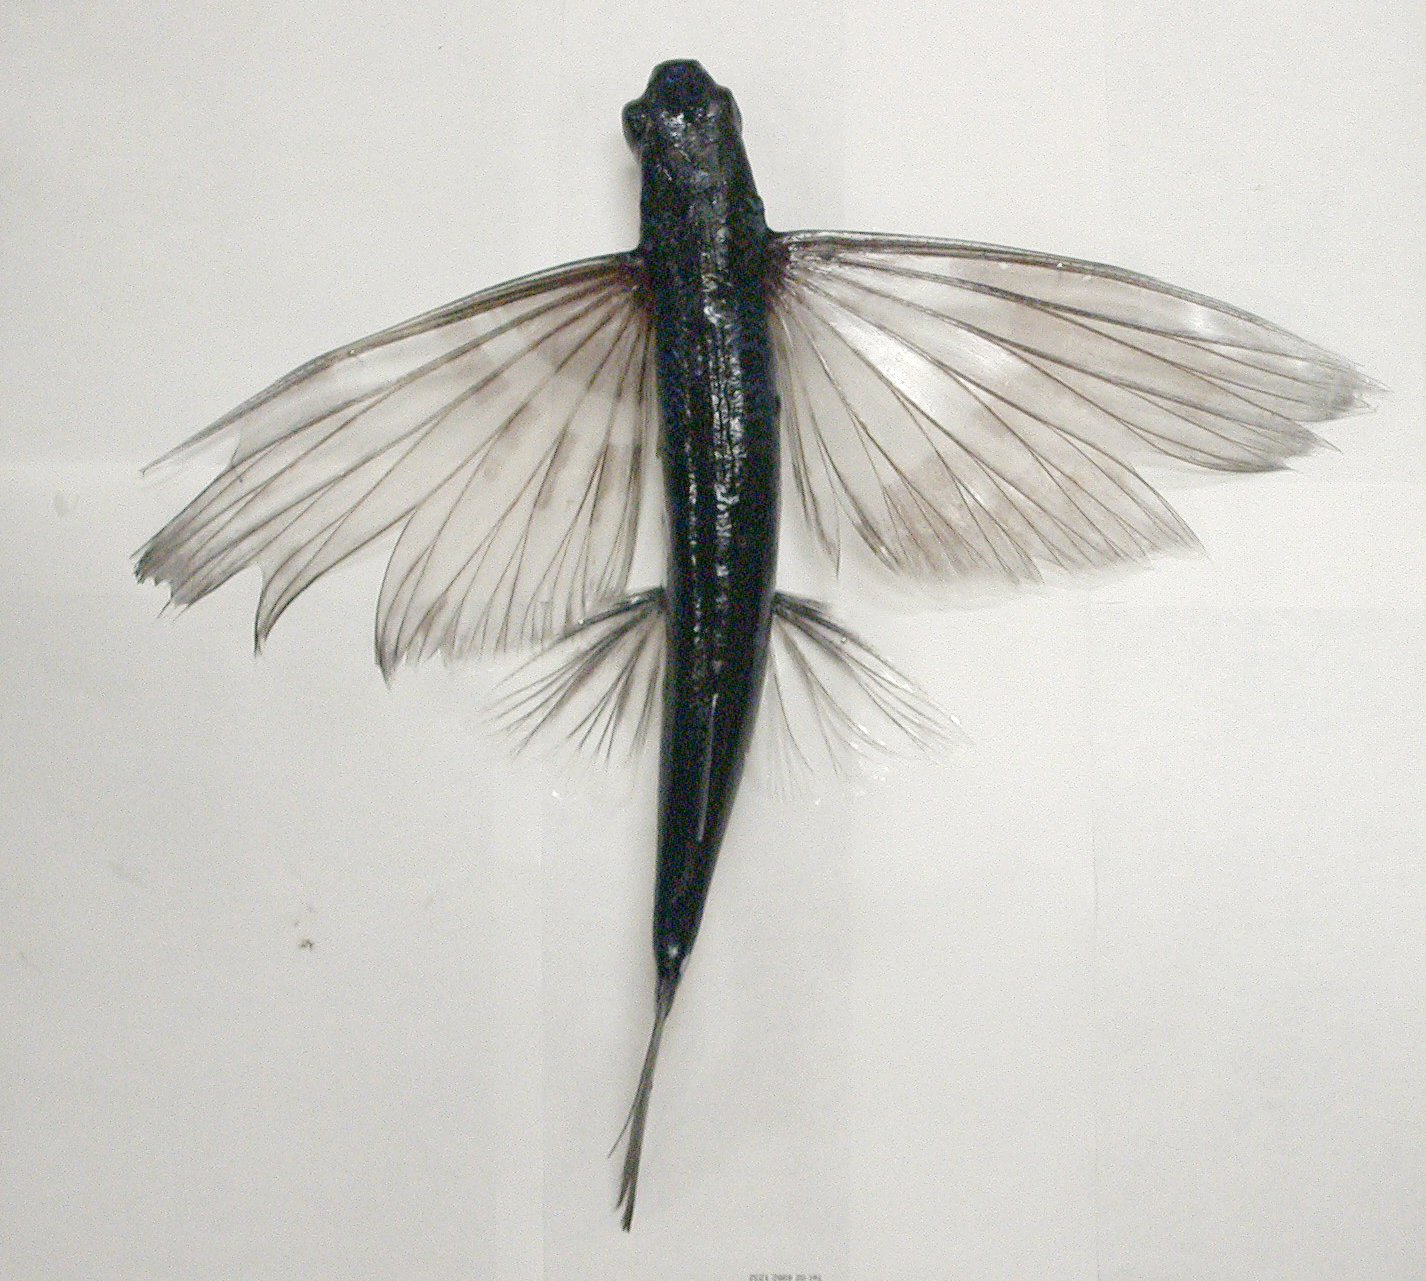 A flyingfish, Cheilopogon sp  - The Australian Museum